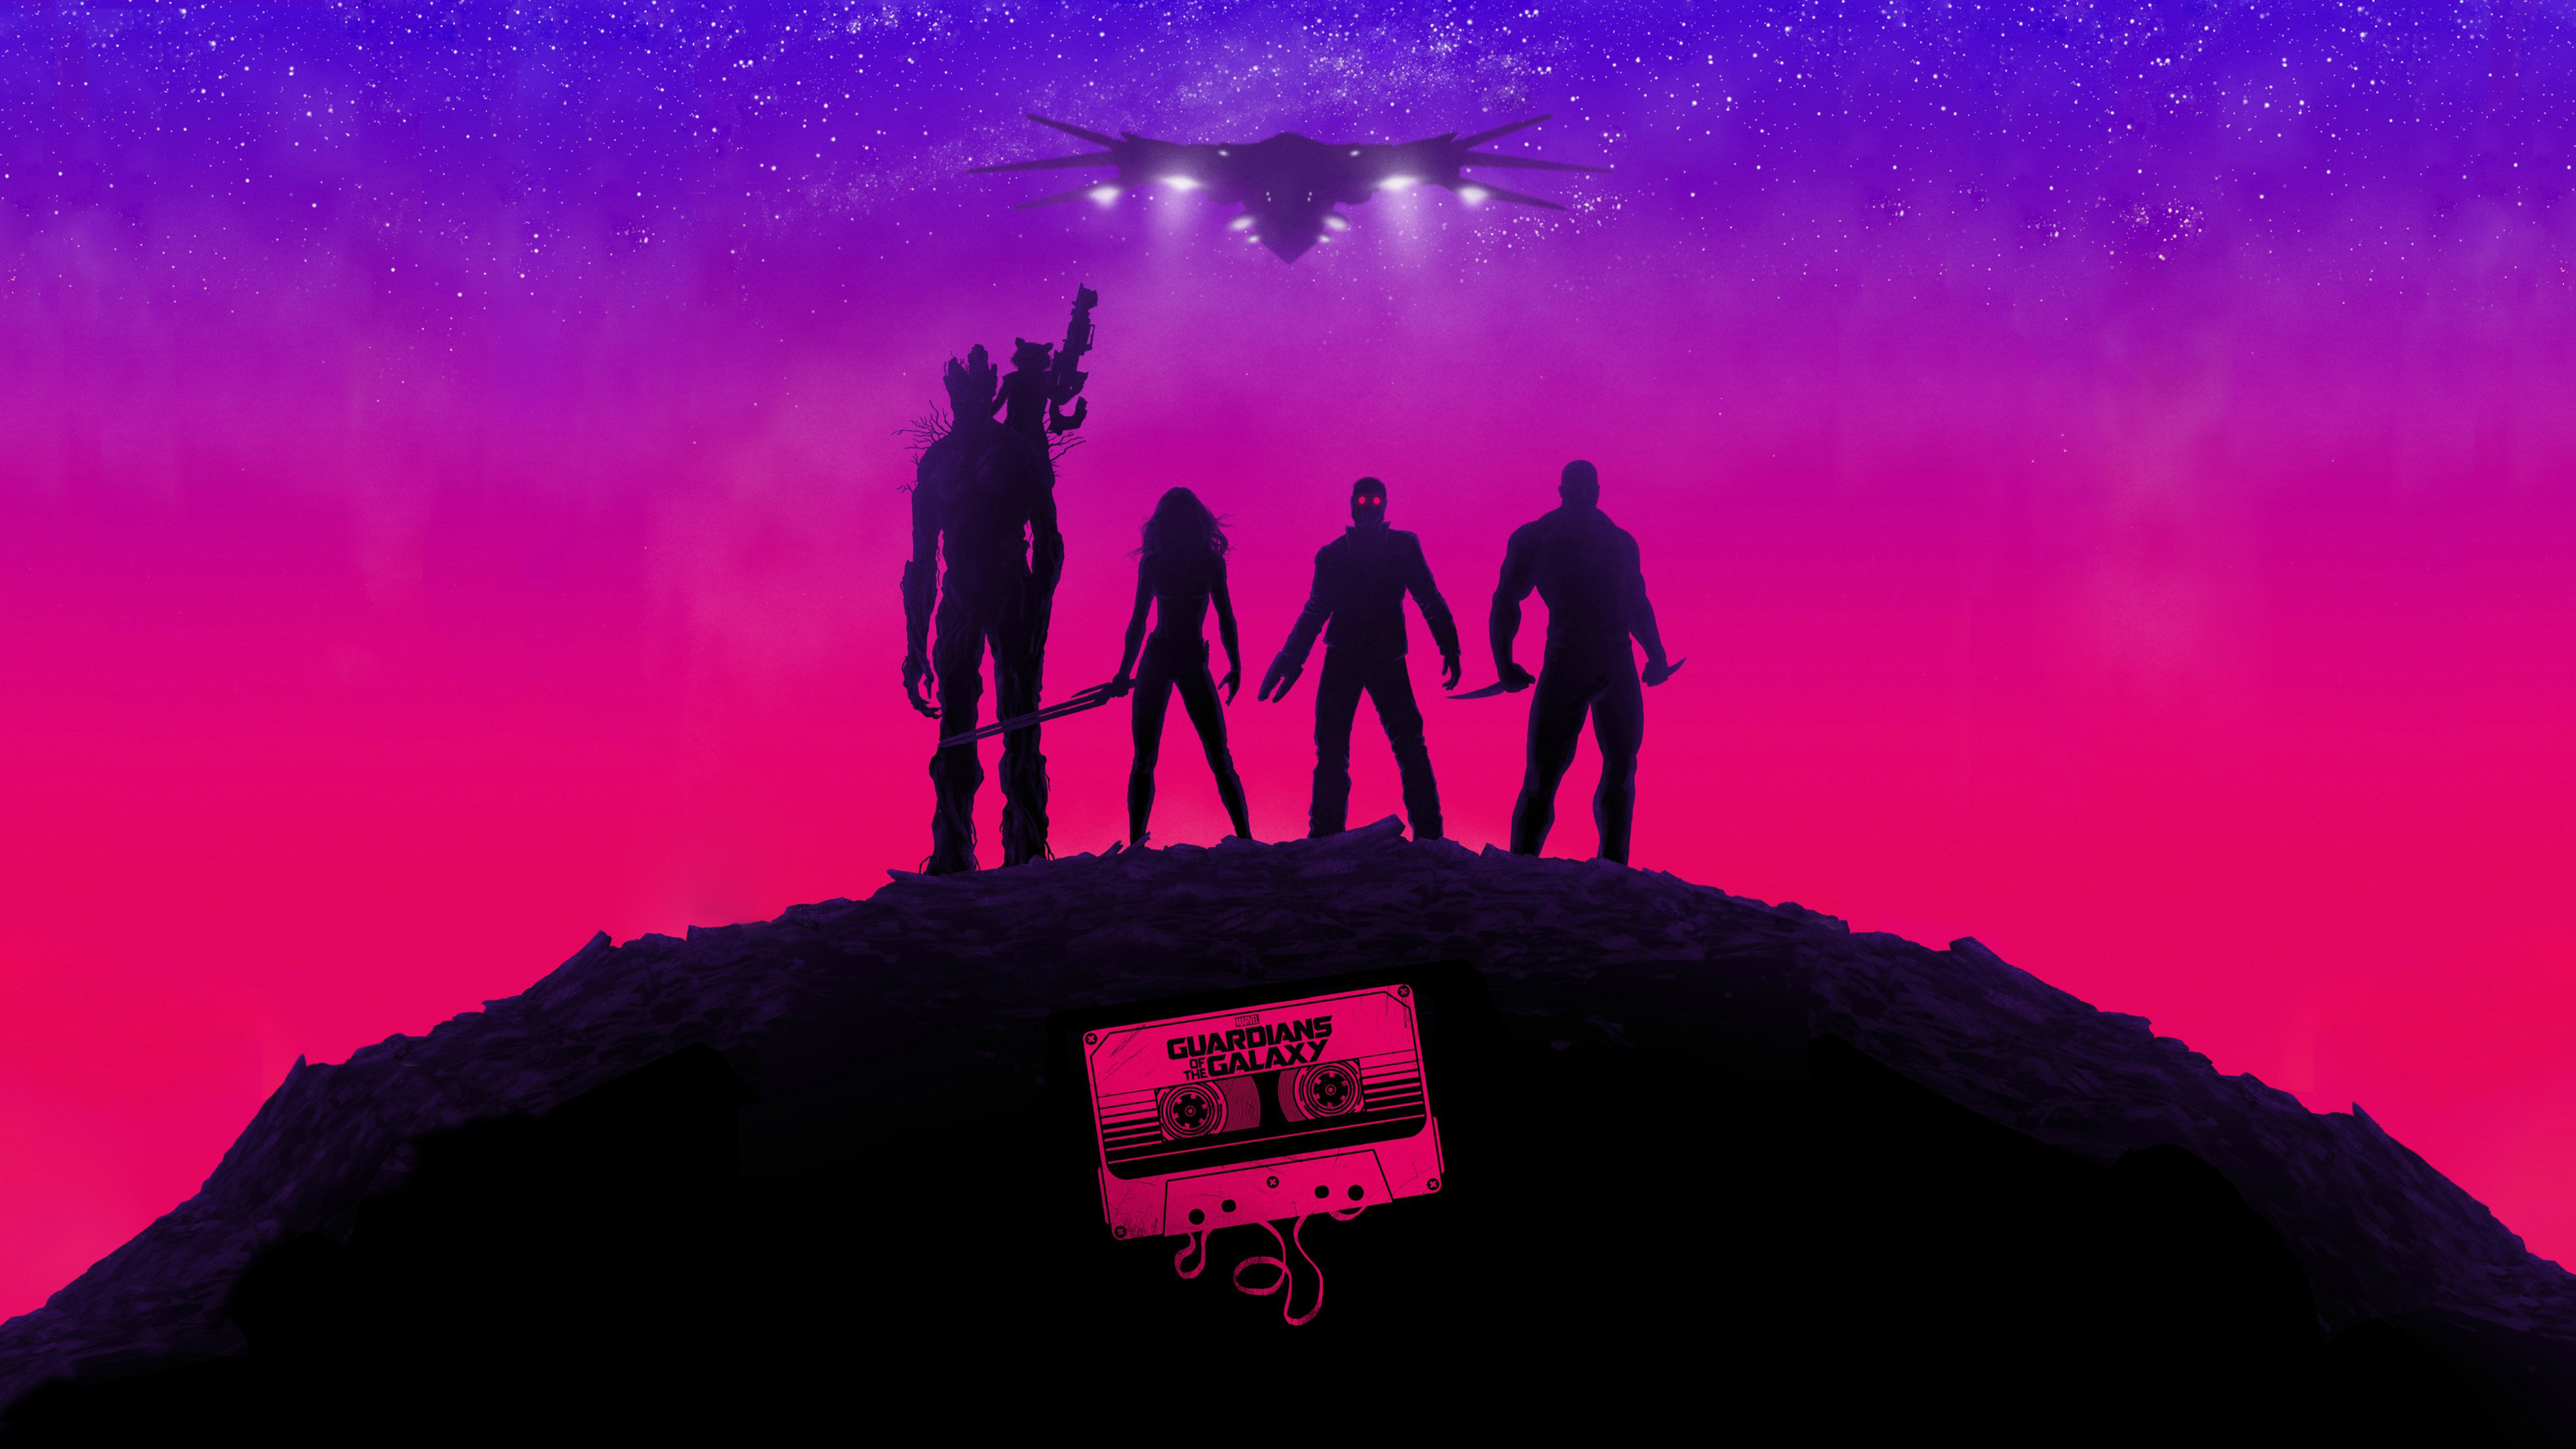 guardians-of-the-galaxy-Google-Search-wallpaper-wp3606461